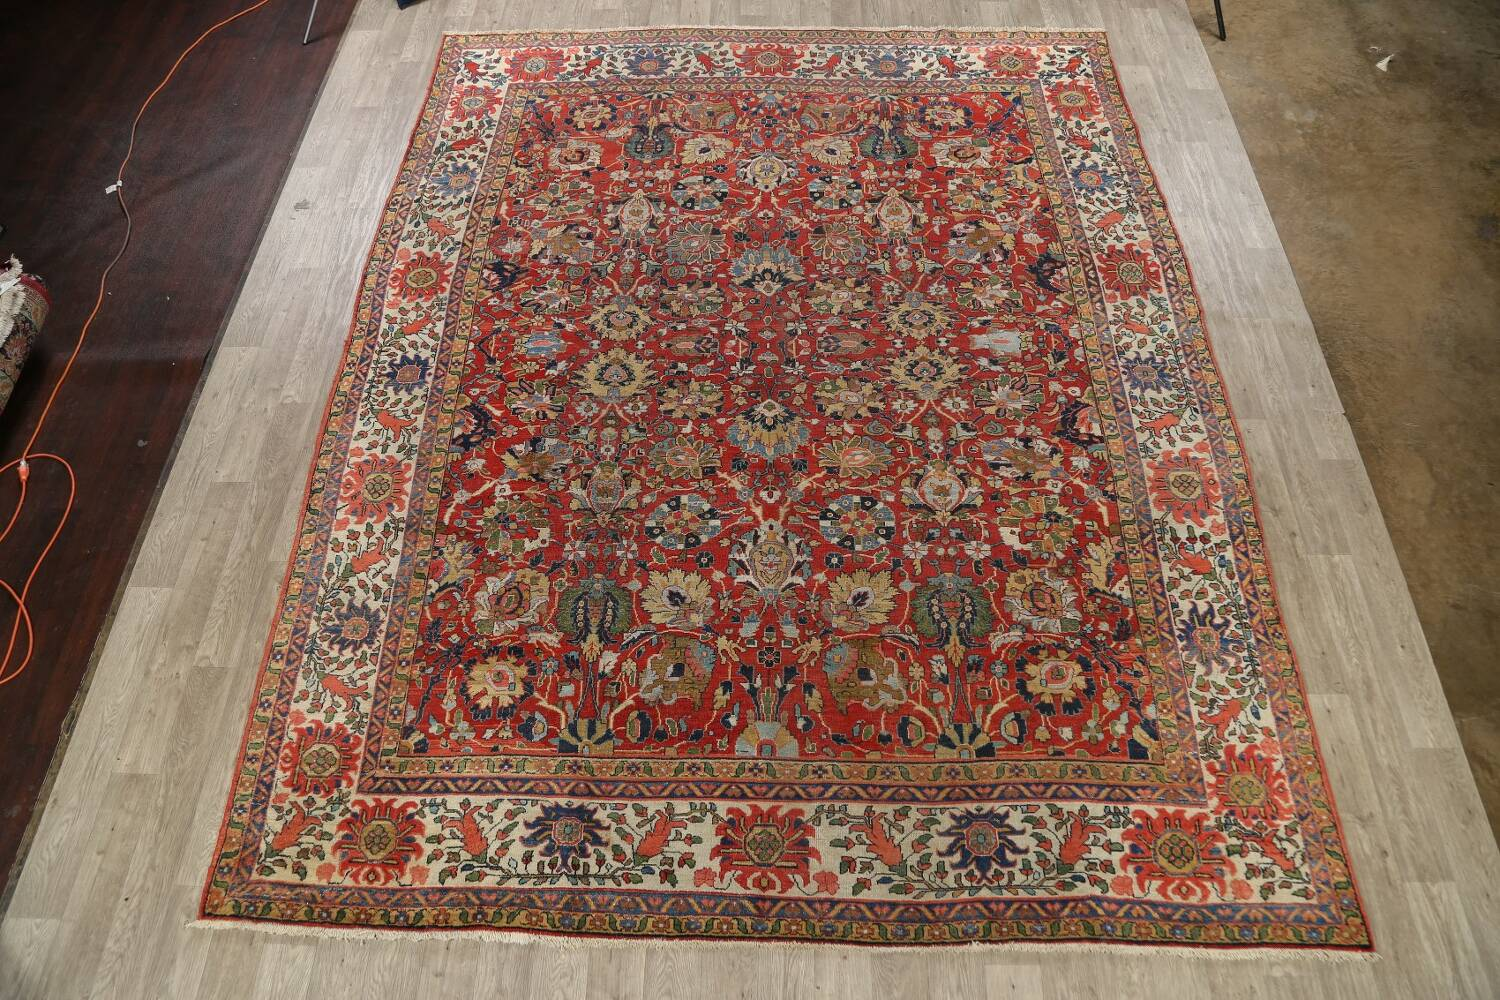 Pre-1900 Vegetable Dye Sultanabad Persian Area Rug 10x13 image 2